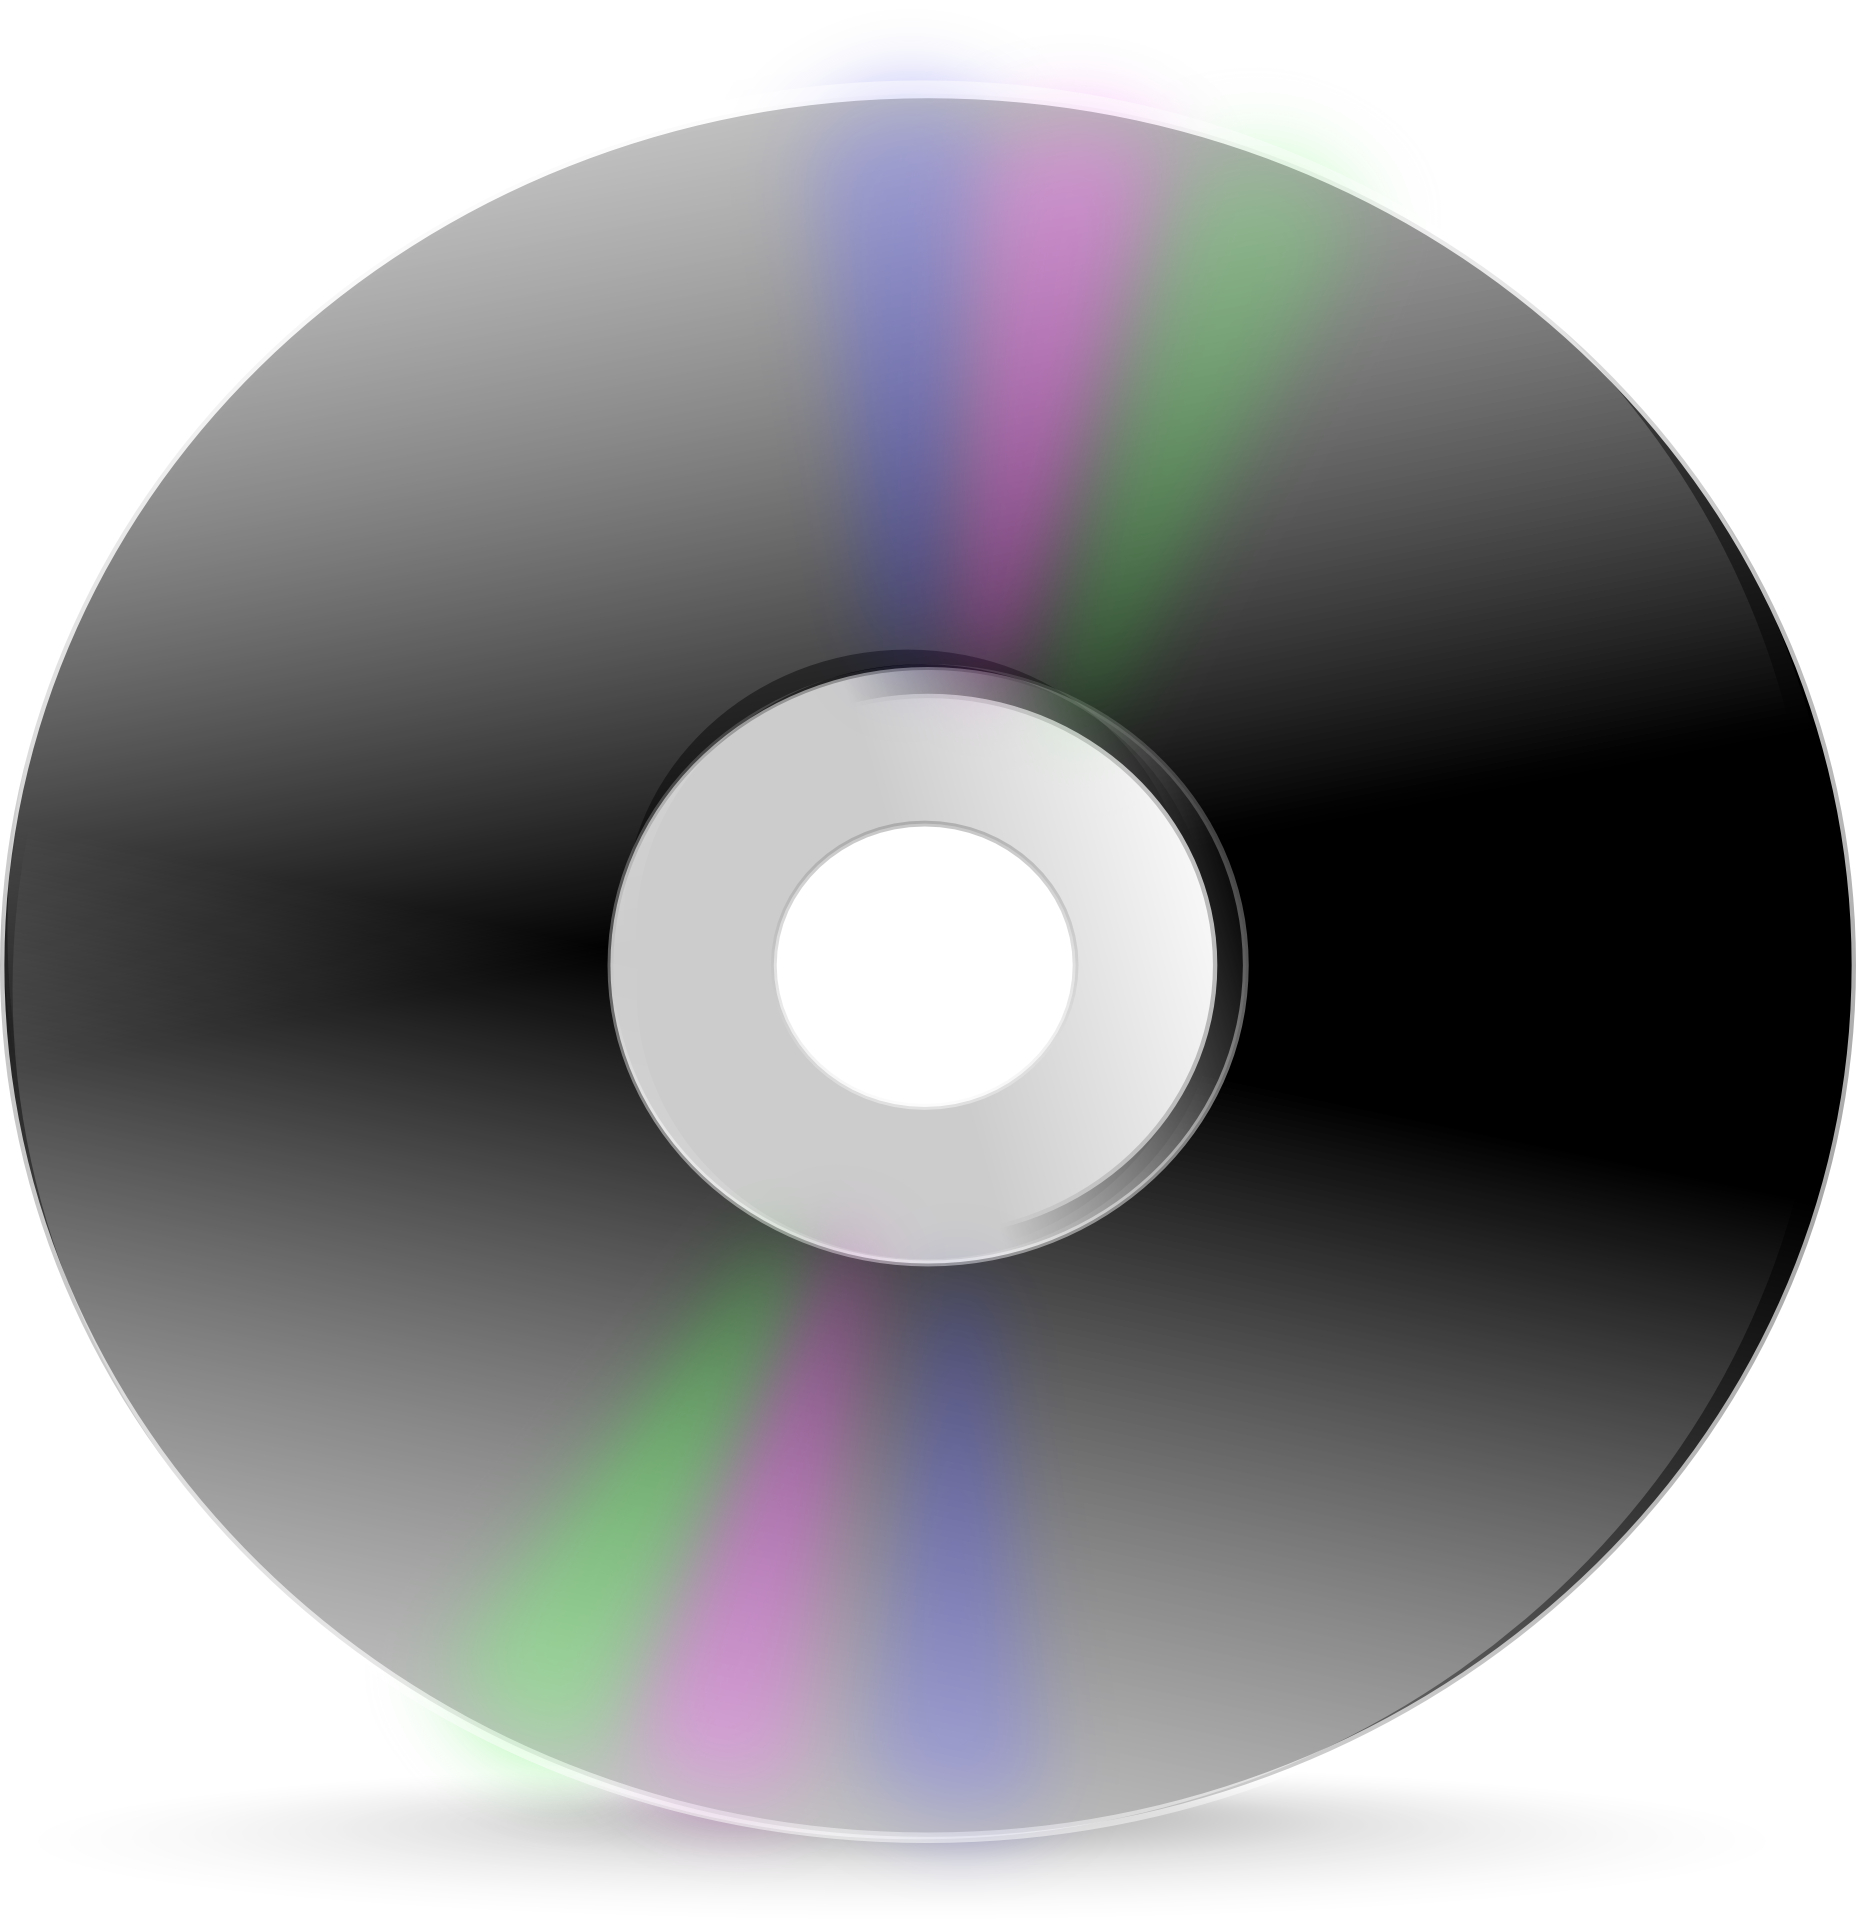 Gray DVD disk vector,CD Disk